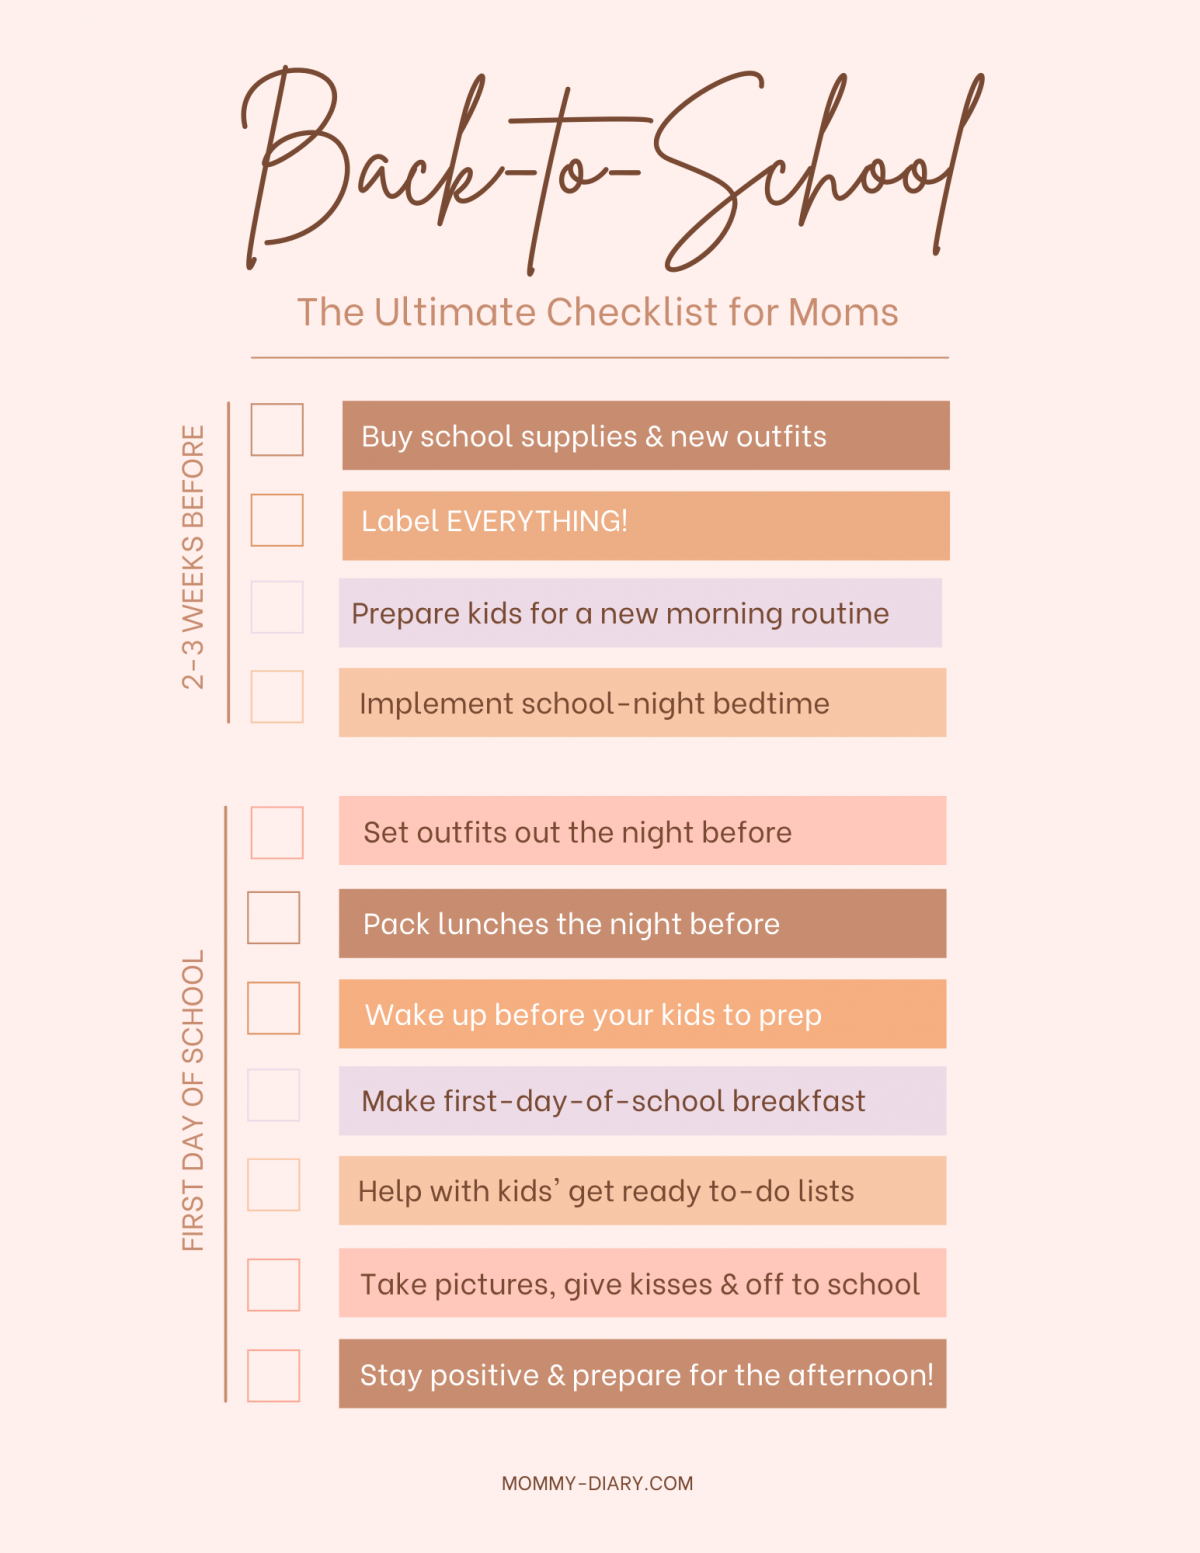 Back-to-School Checklist for moms